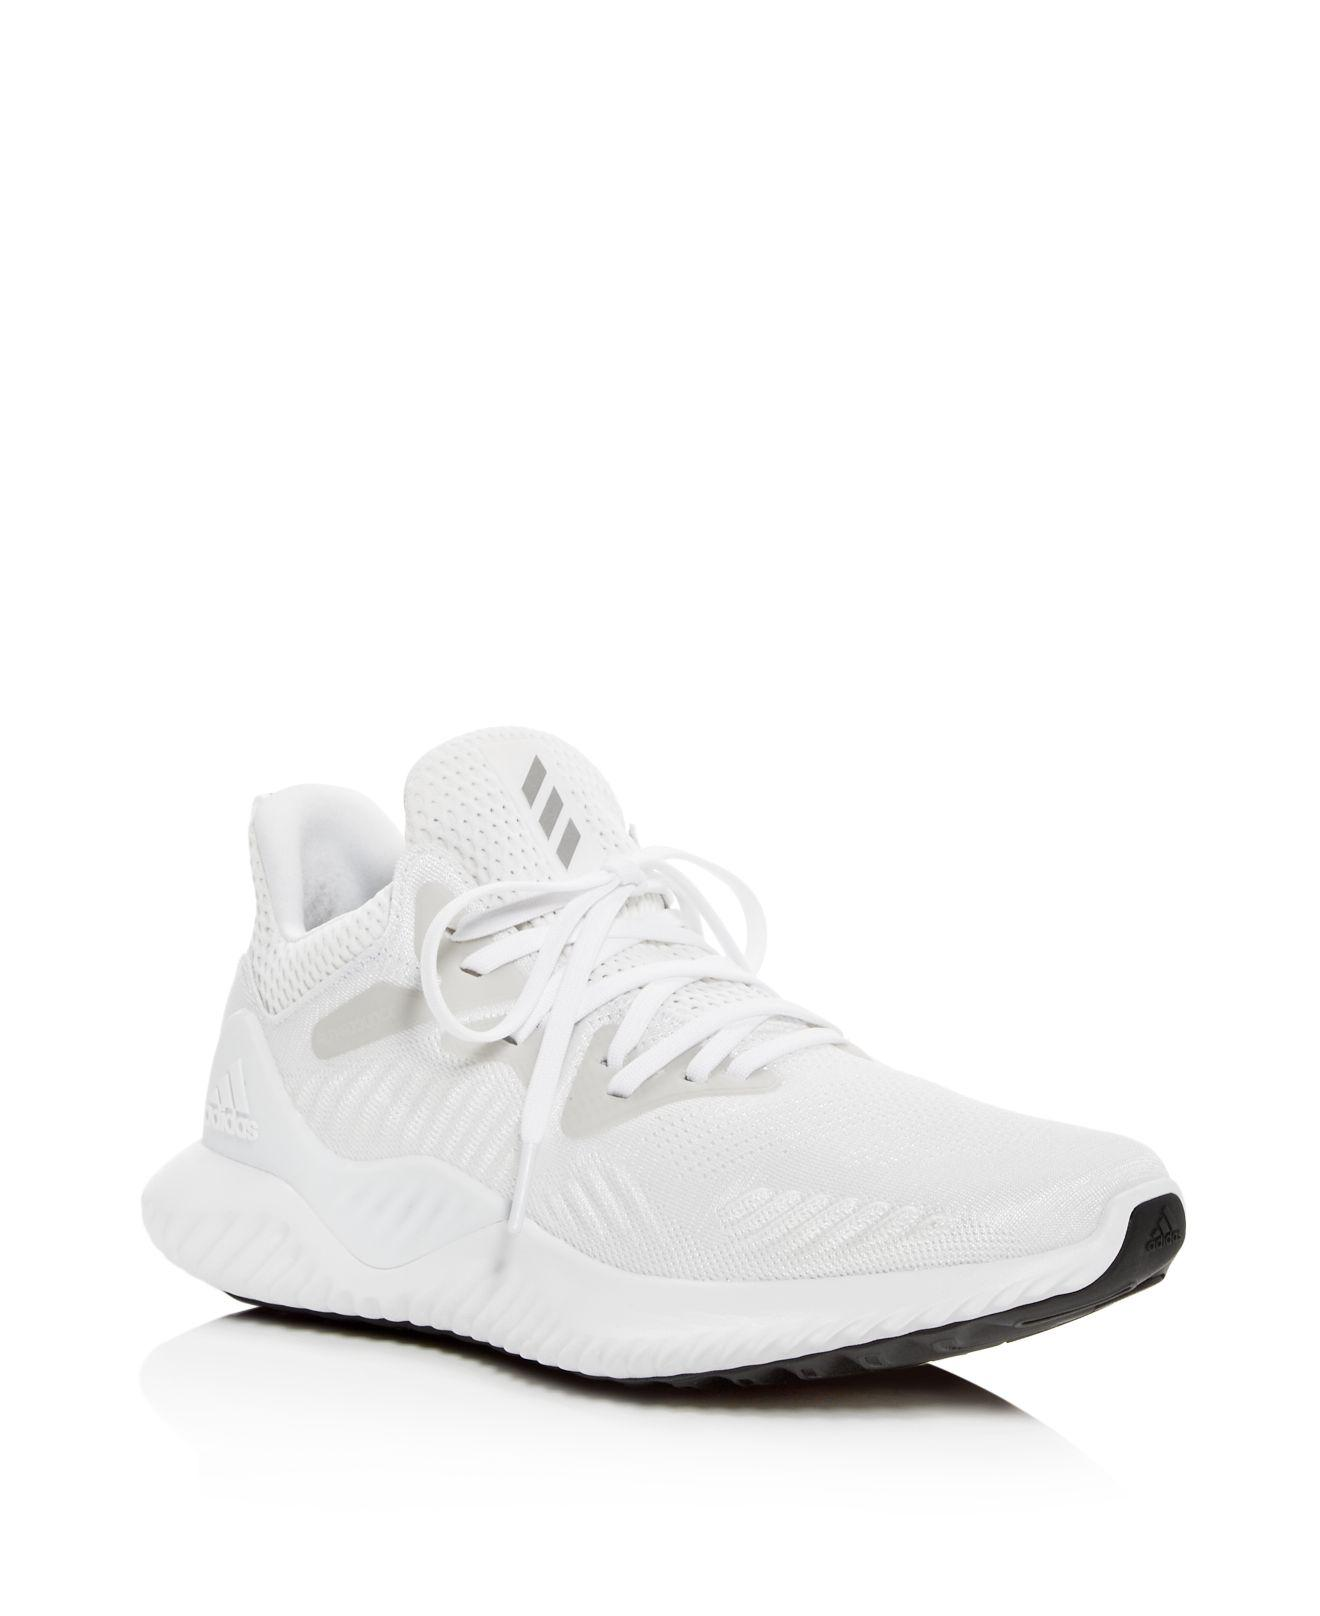 adidas Women's Alphabounce Beyond Lace Up Sneakers hgbswJCnT